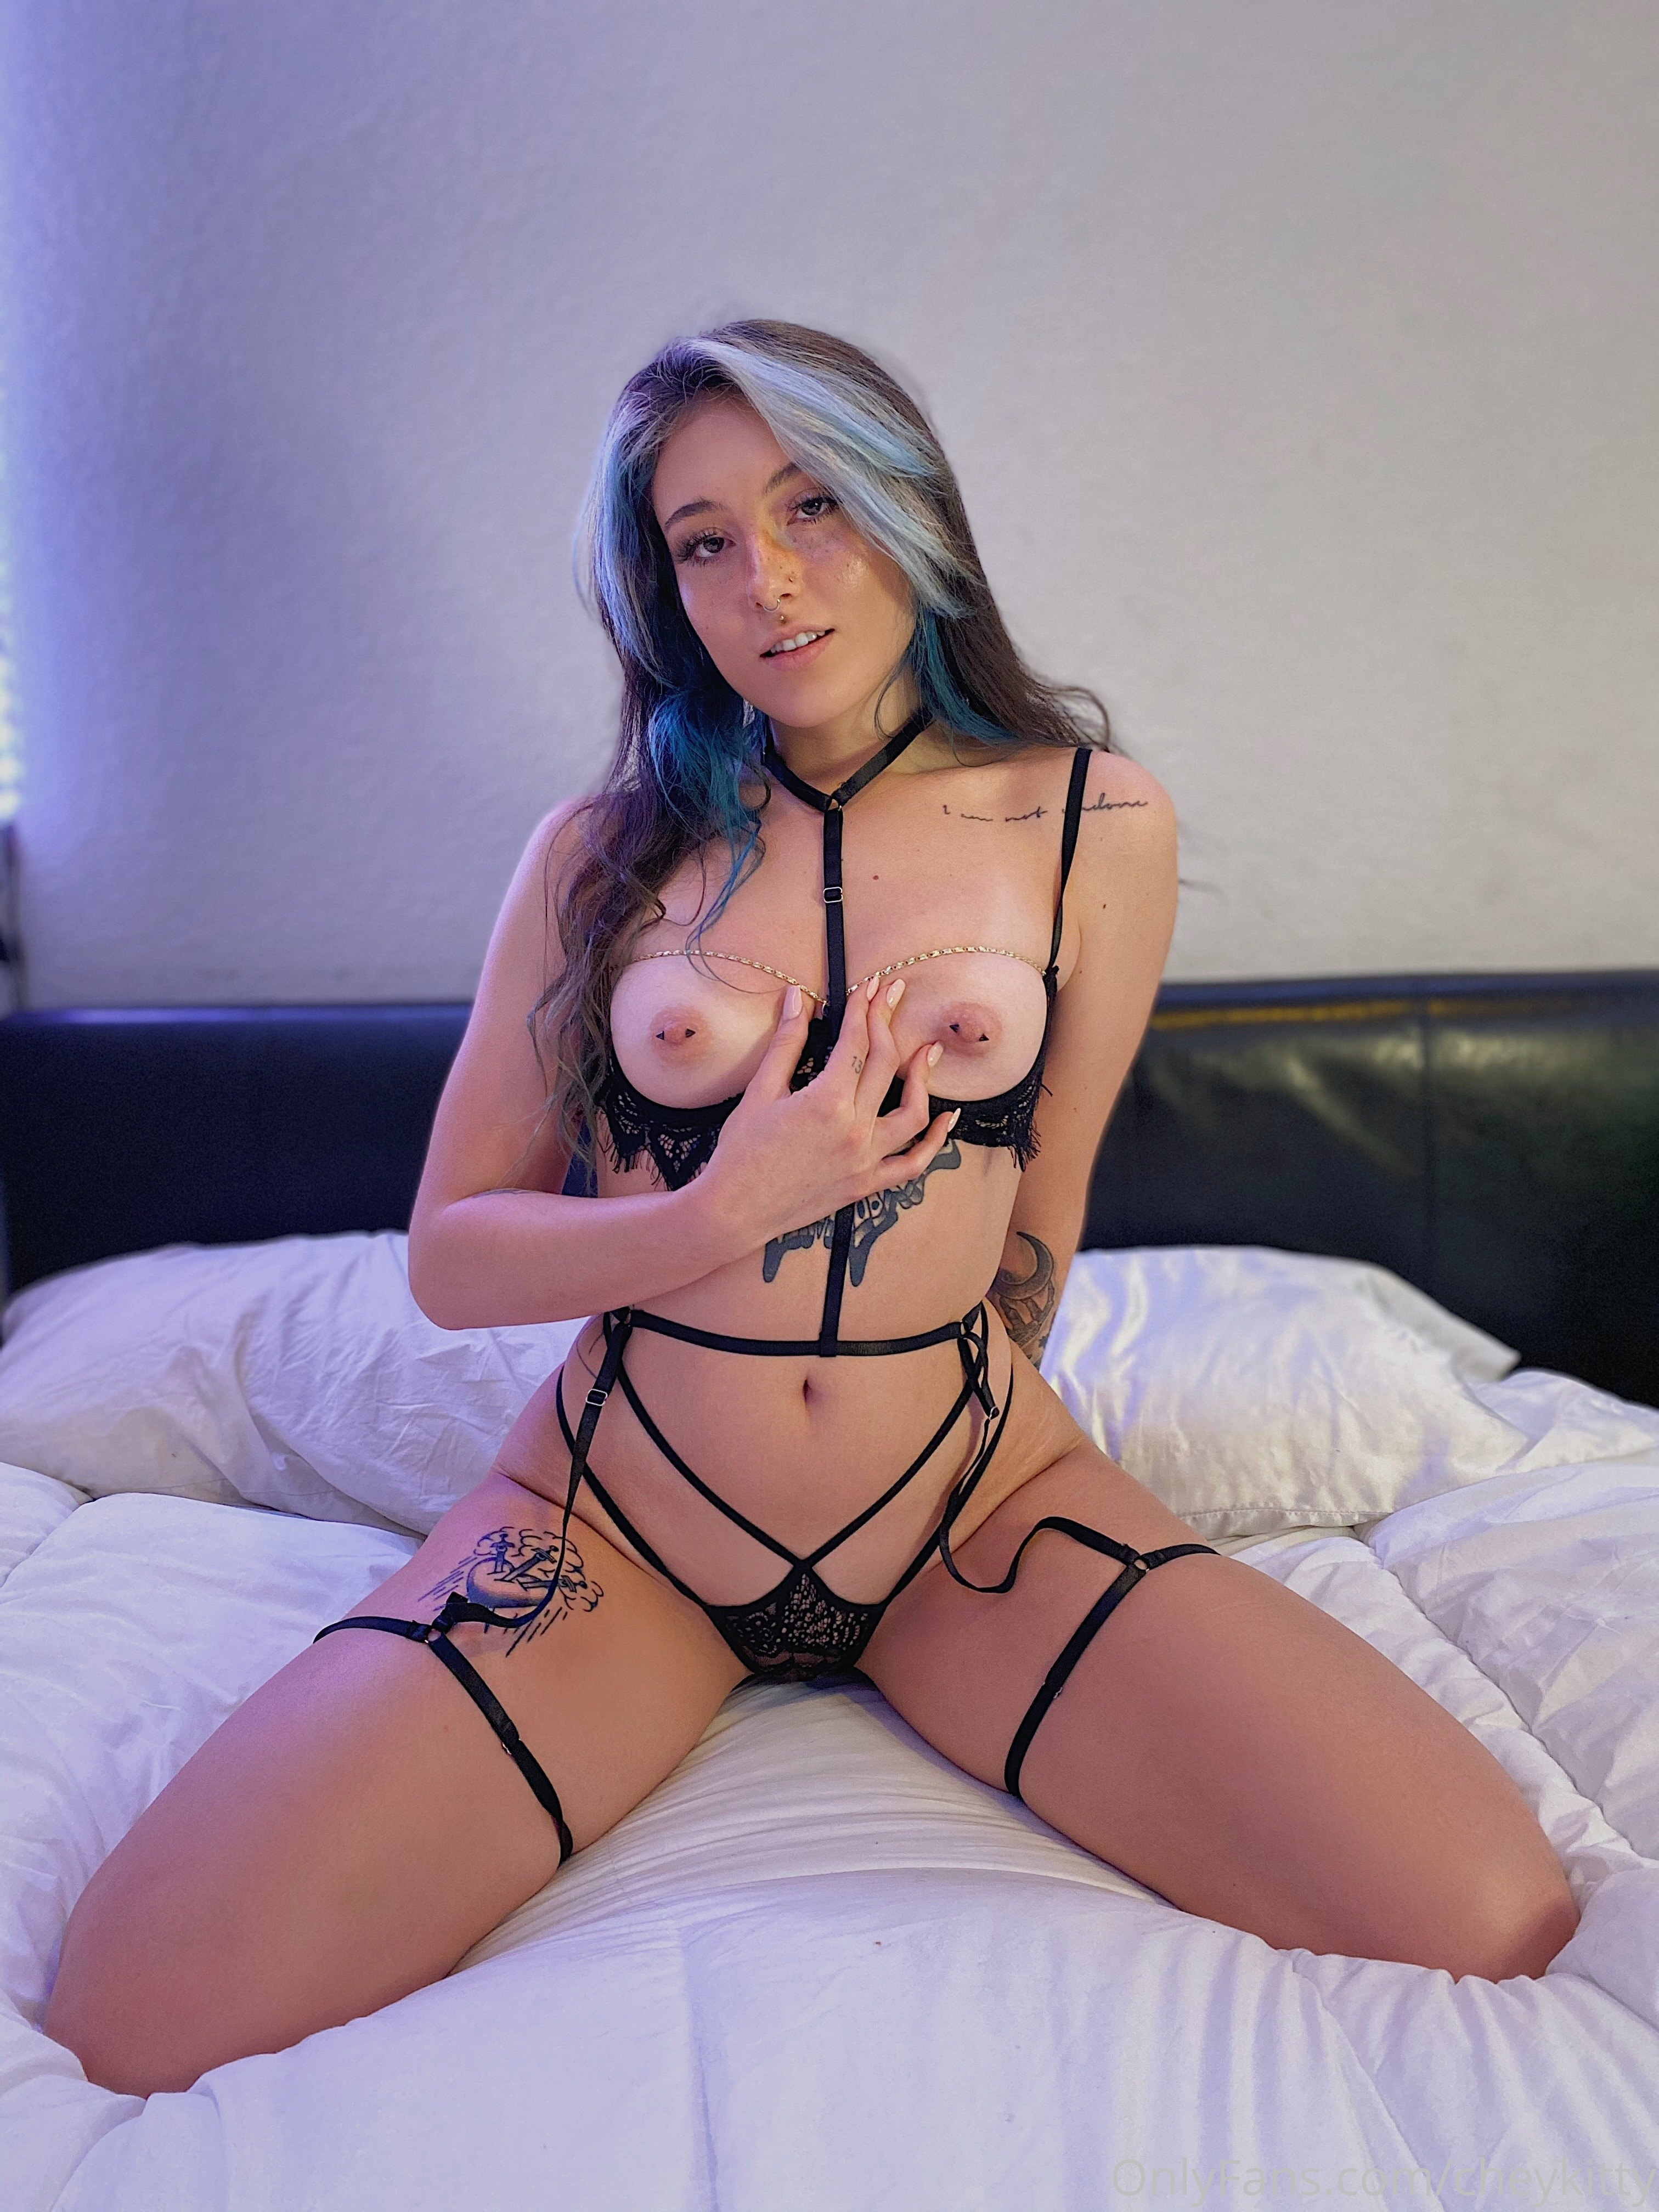 Cheykitty Onlyfans Leaked 0134